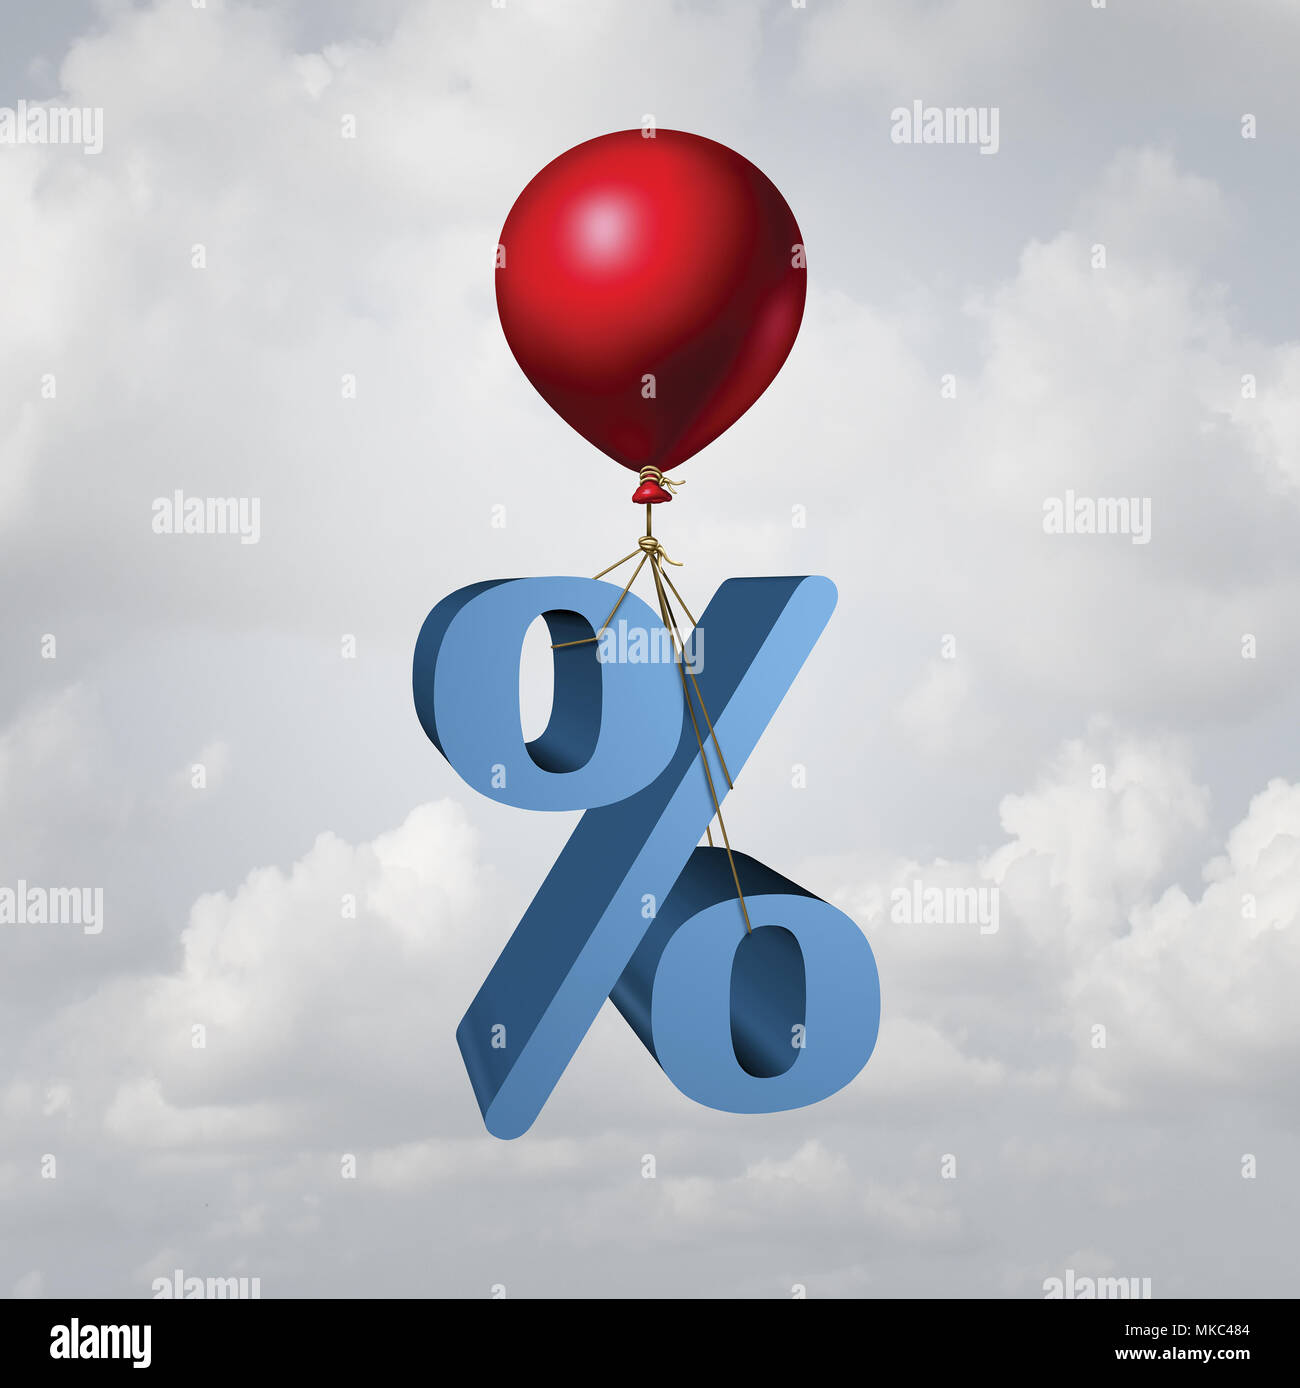 Rising interest rates finance and inflation economic concept as a percentage icon lifted up by a flying balloon with 3D illustration elements. - Stock Image